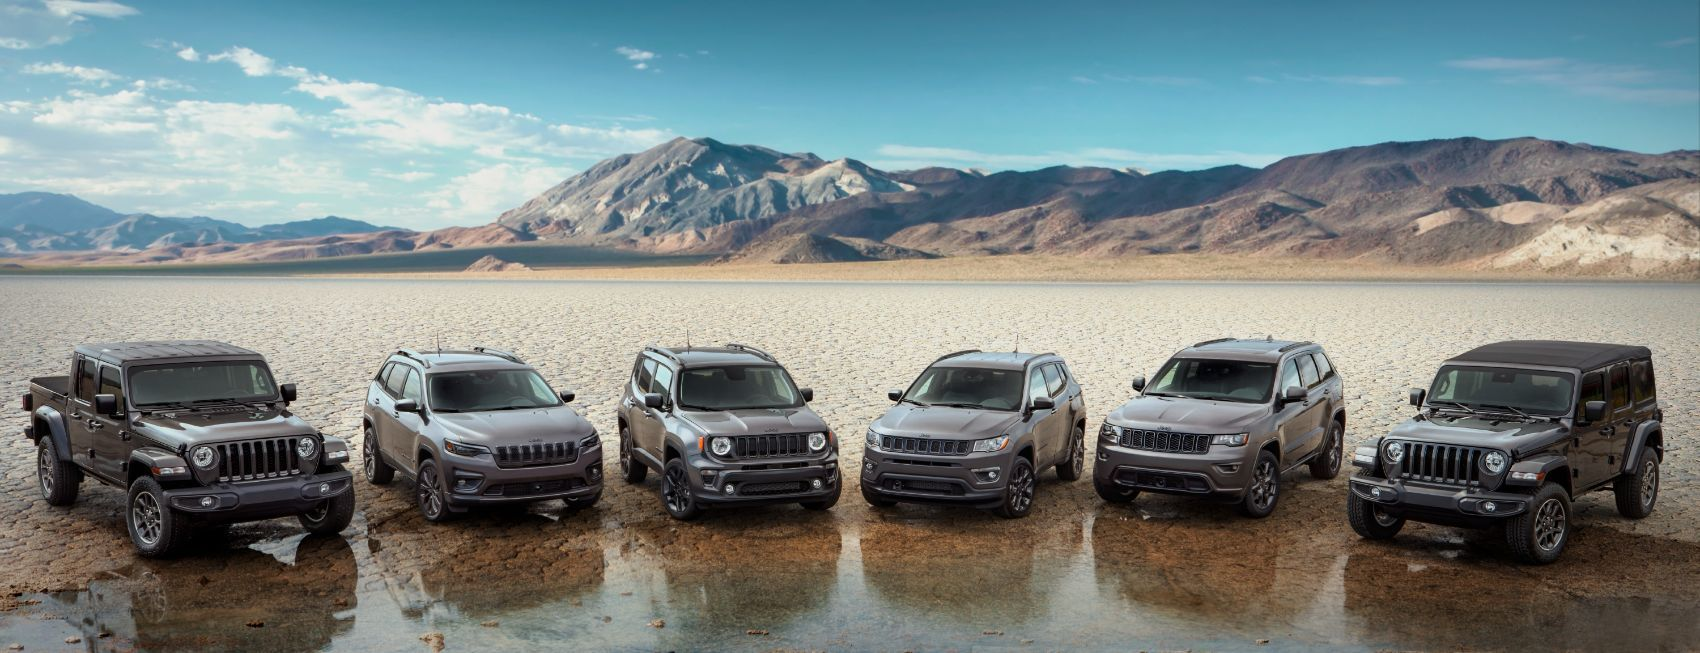 2021 Jeep 80th Anniversary Editions: A Brief Walk Around Each Model